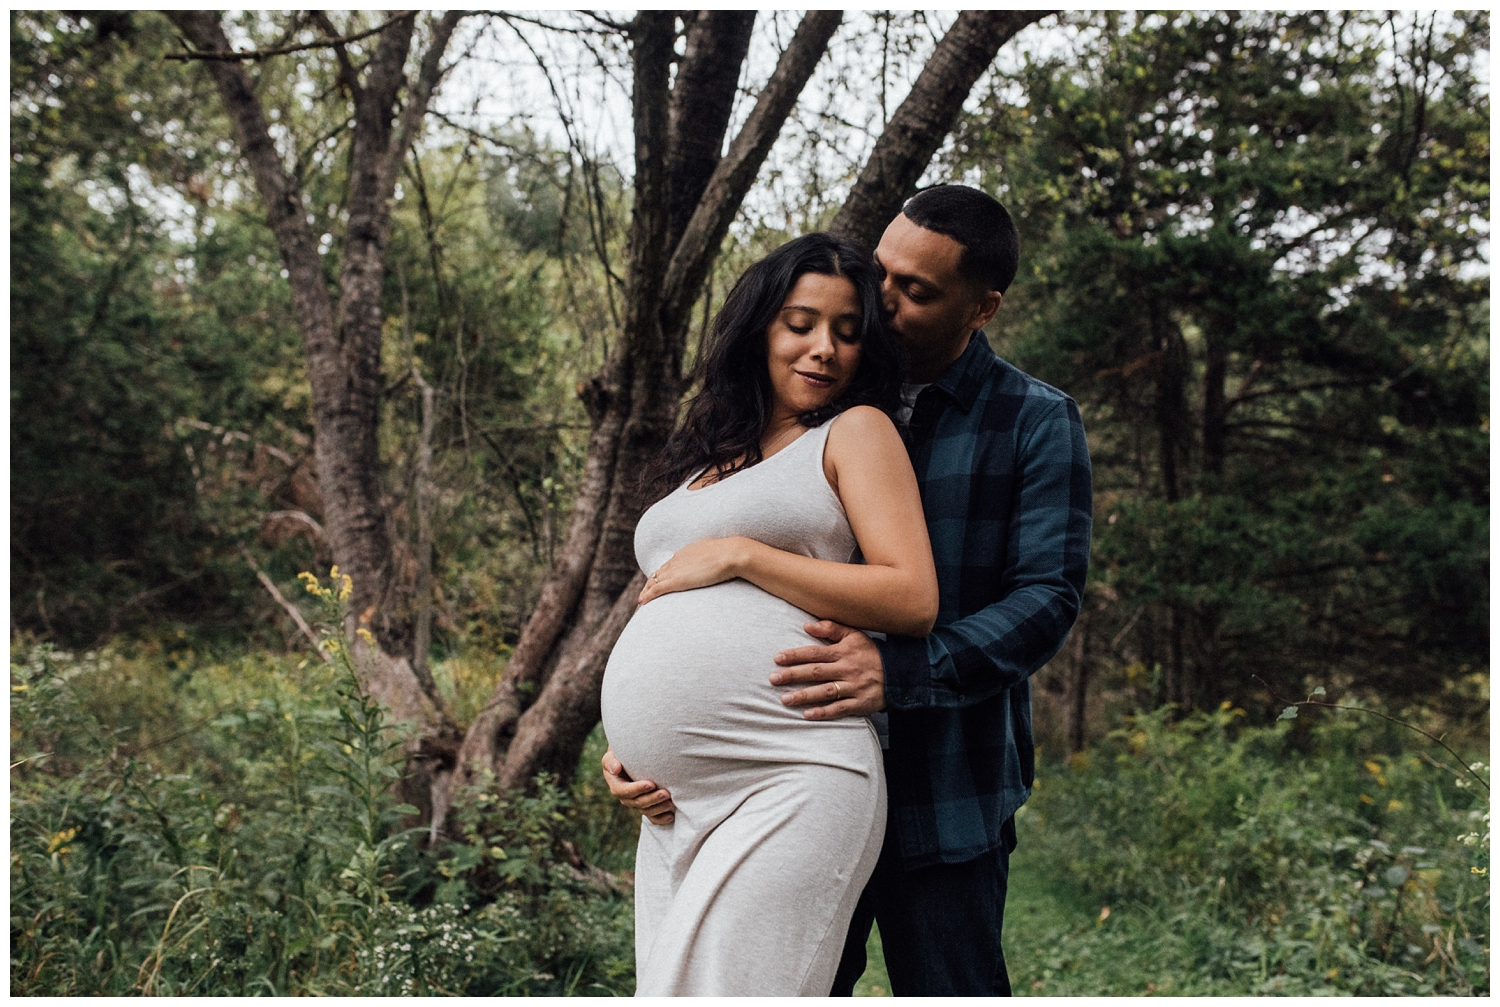 Karla and David Perez Maternity Photoshoot at Home with jenFAIRCHILD Photography in Hudson Valley New York_0029.jpg